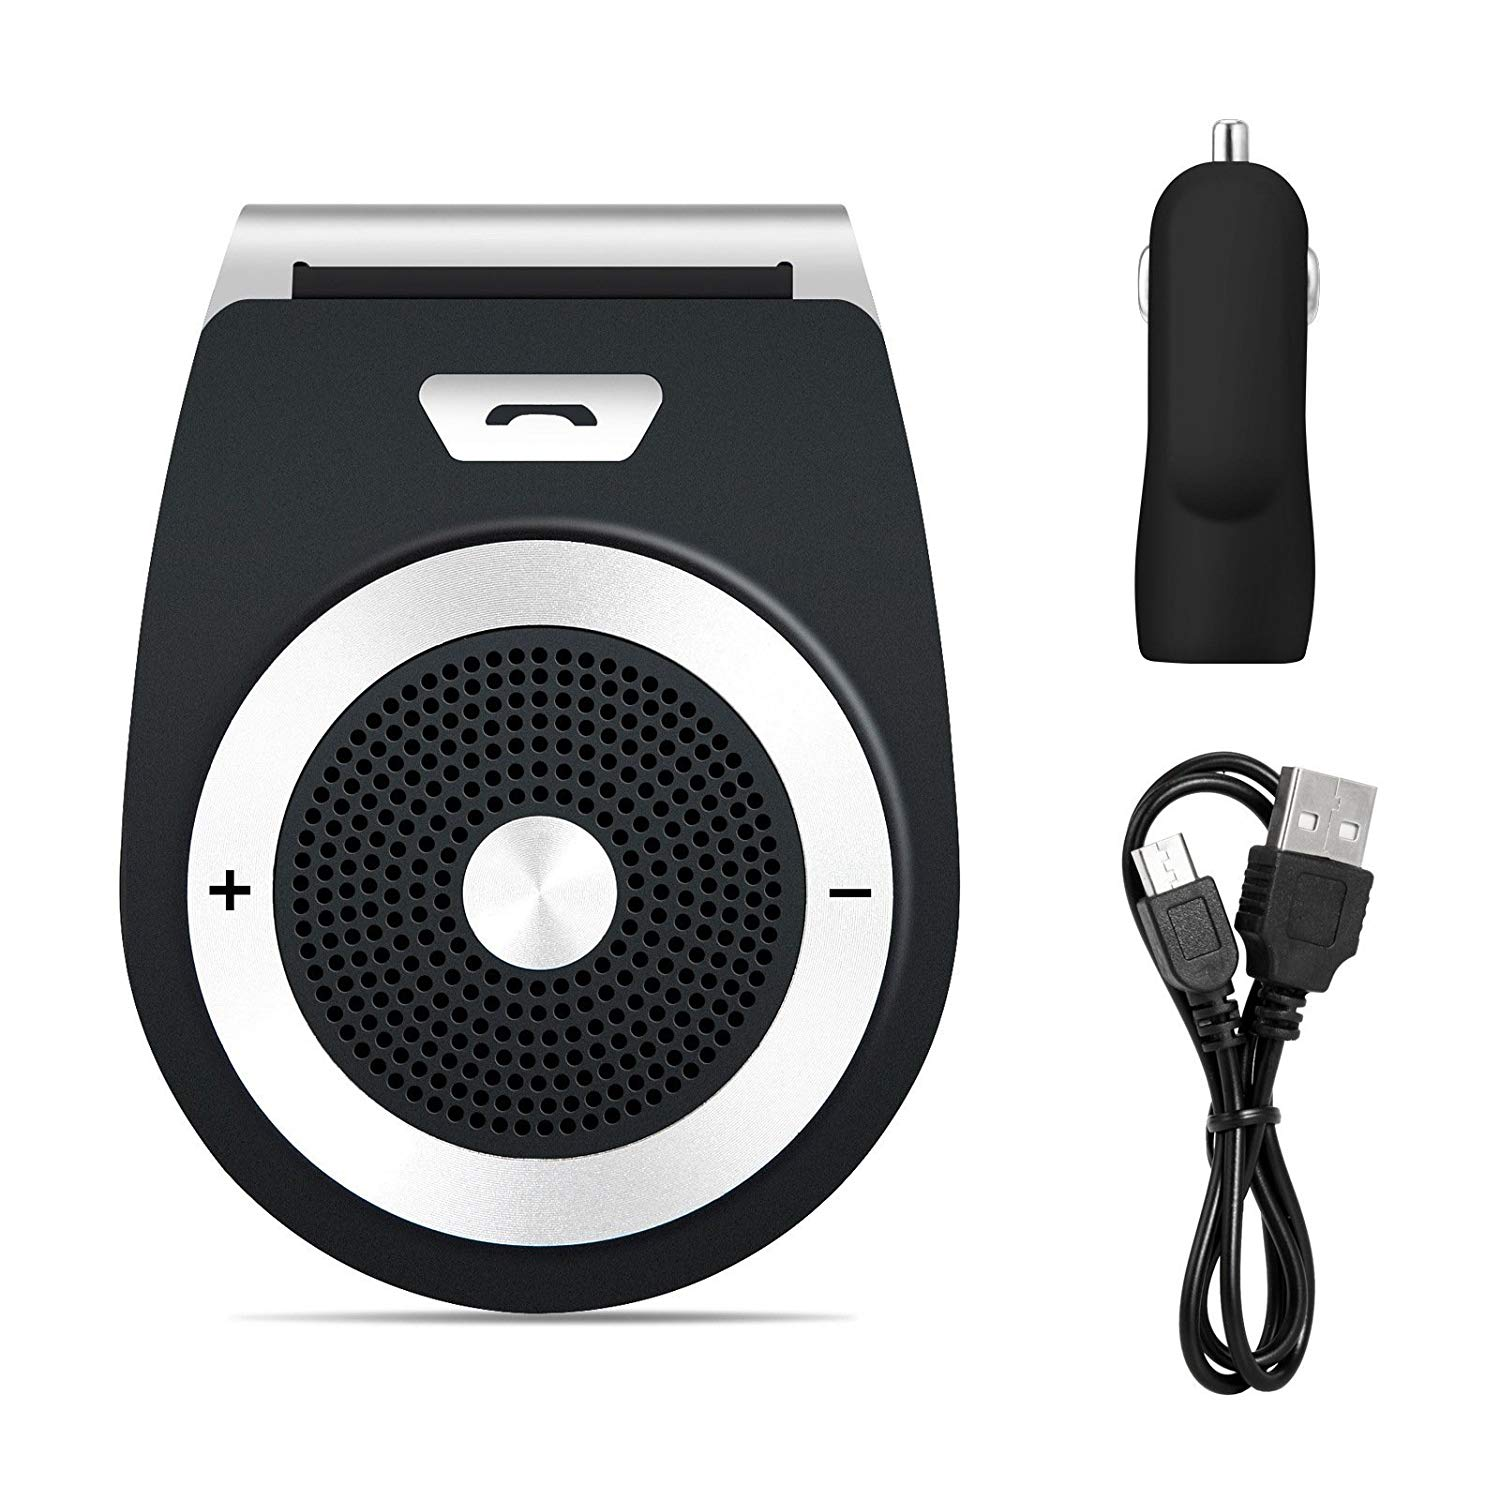 Car Bluetooth Speaker, Bunnyfan Wireless Portable Motion AUTO-ON Car Bluetooth Speakerphone for Stereo Music Playing, Hands-Free Calling with Car Charger